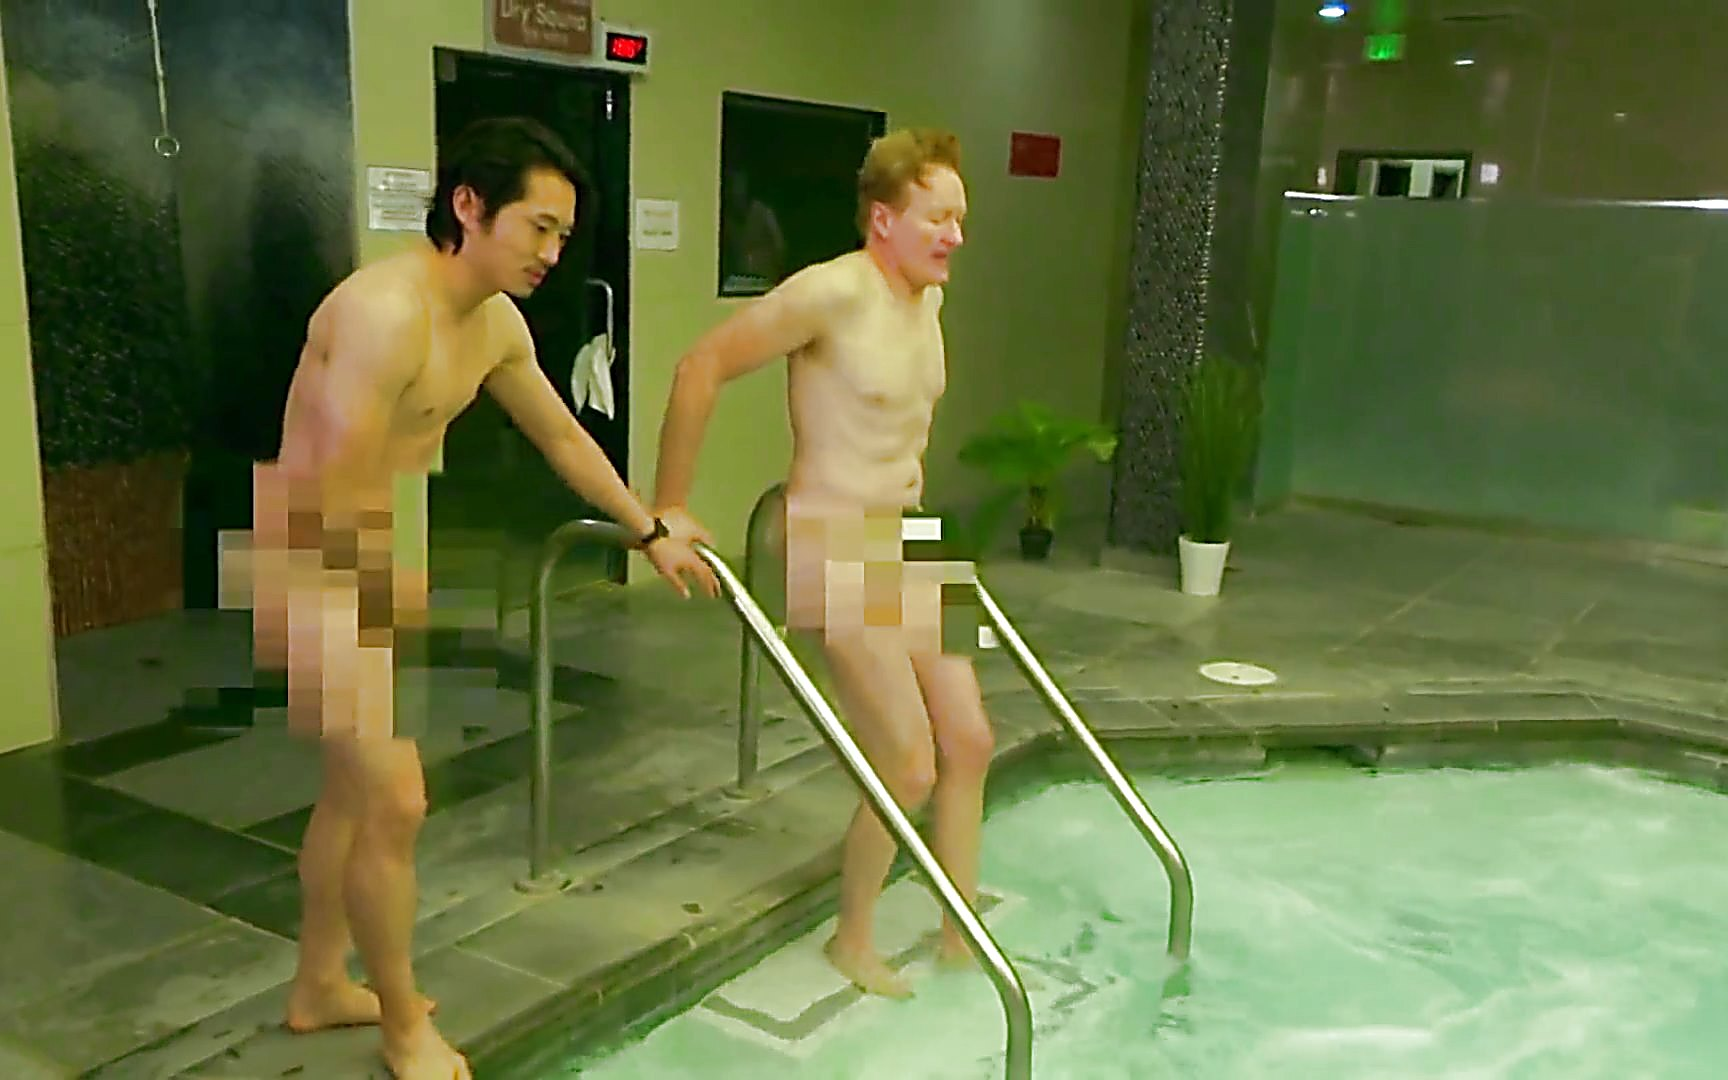 Conan O Brien sexy shirtless scene March 1, 2015, 6pm